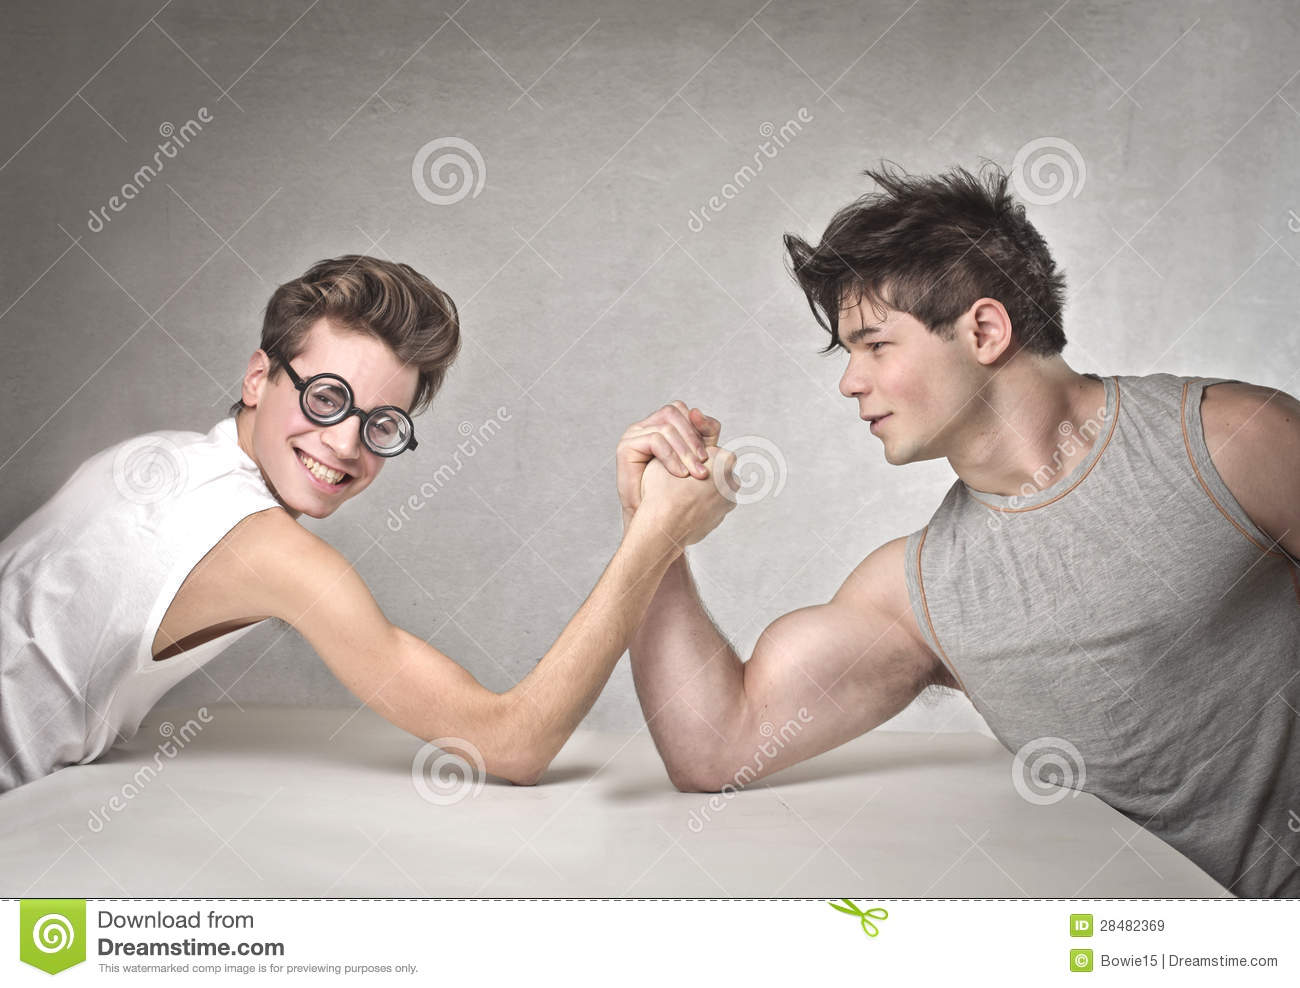 Armwrestling Royalty Free Stock Images   Image  28482369